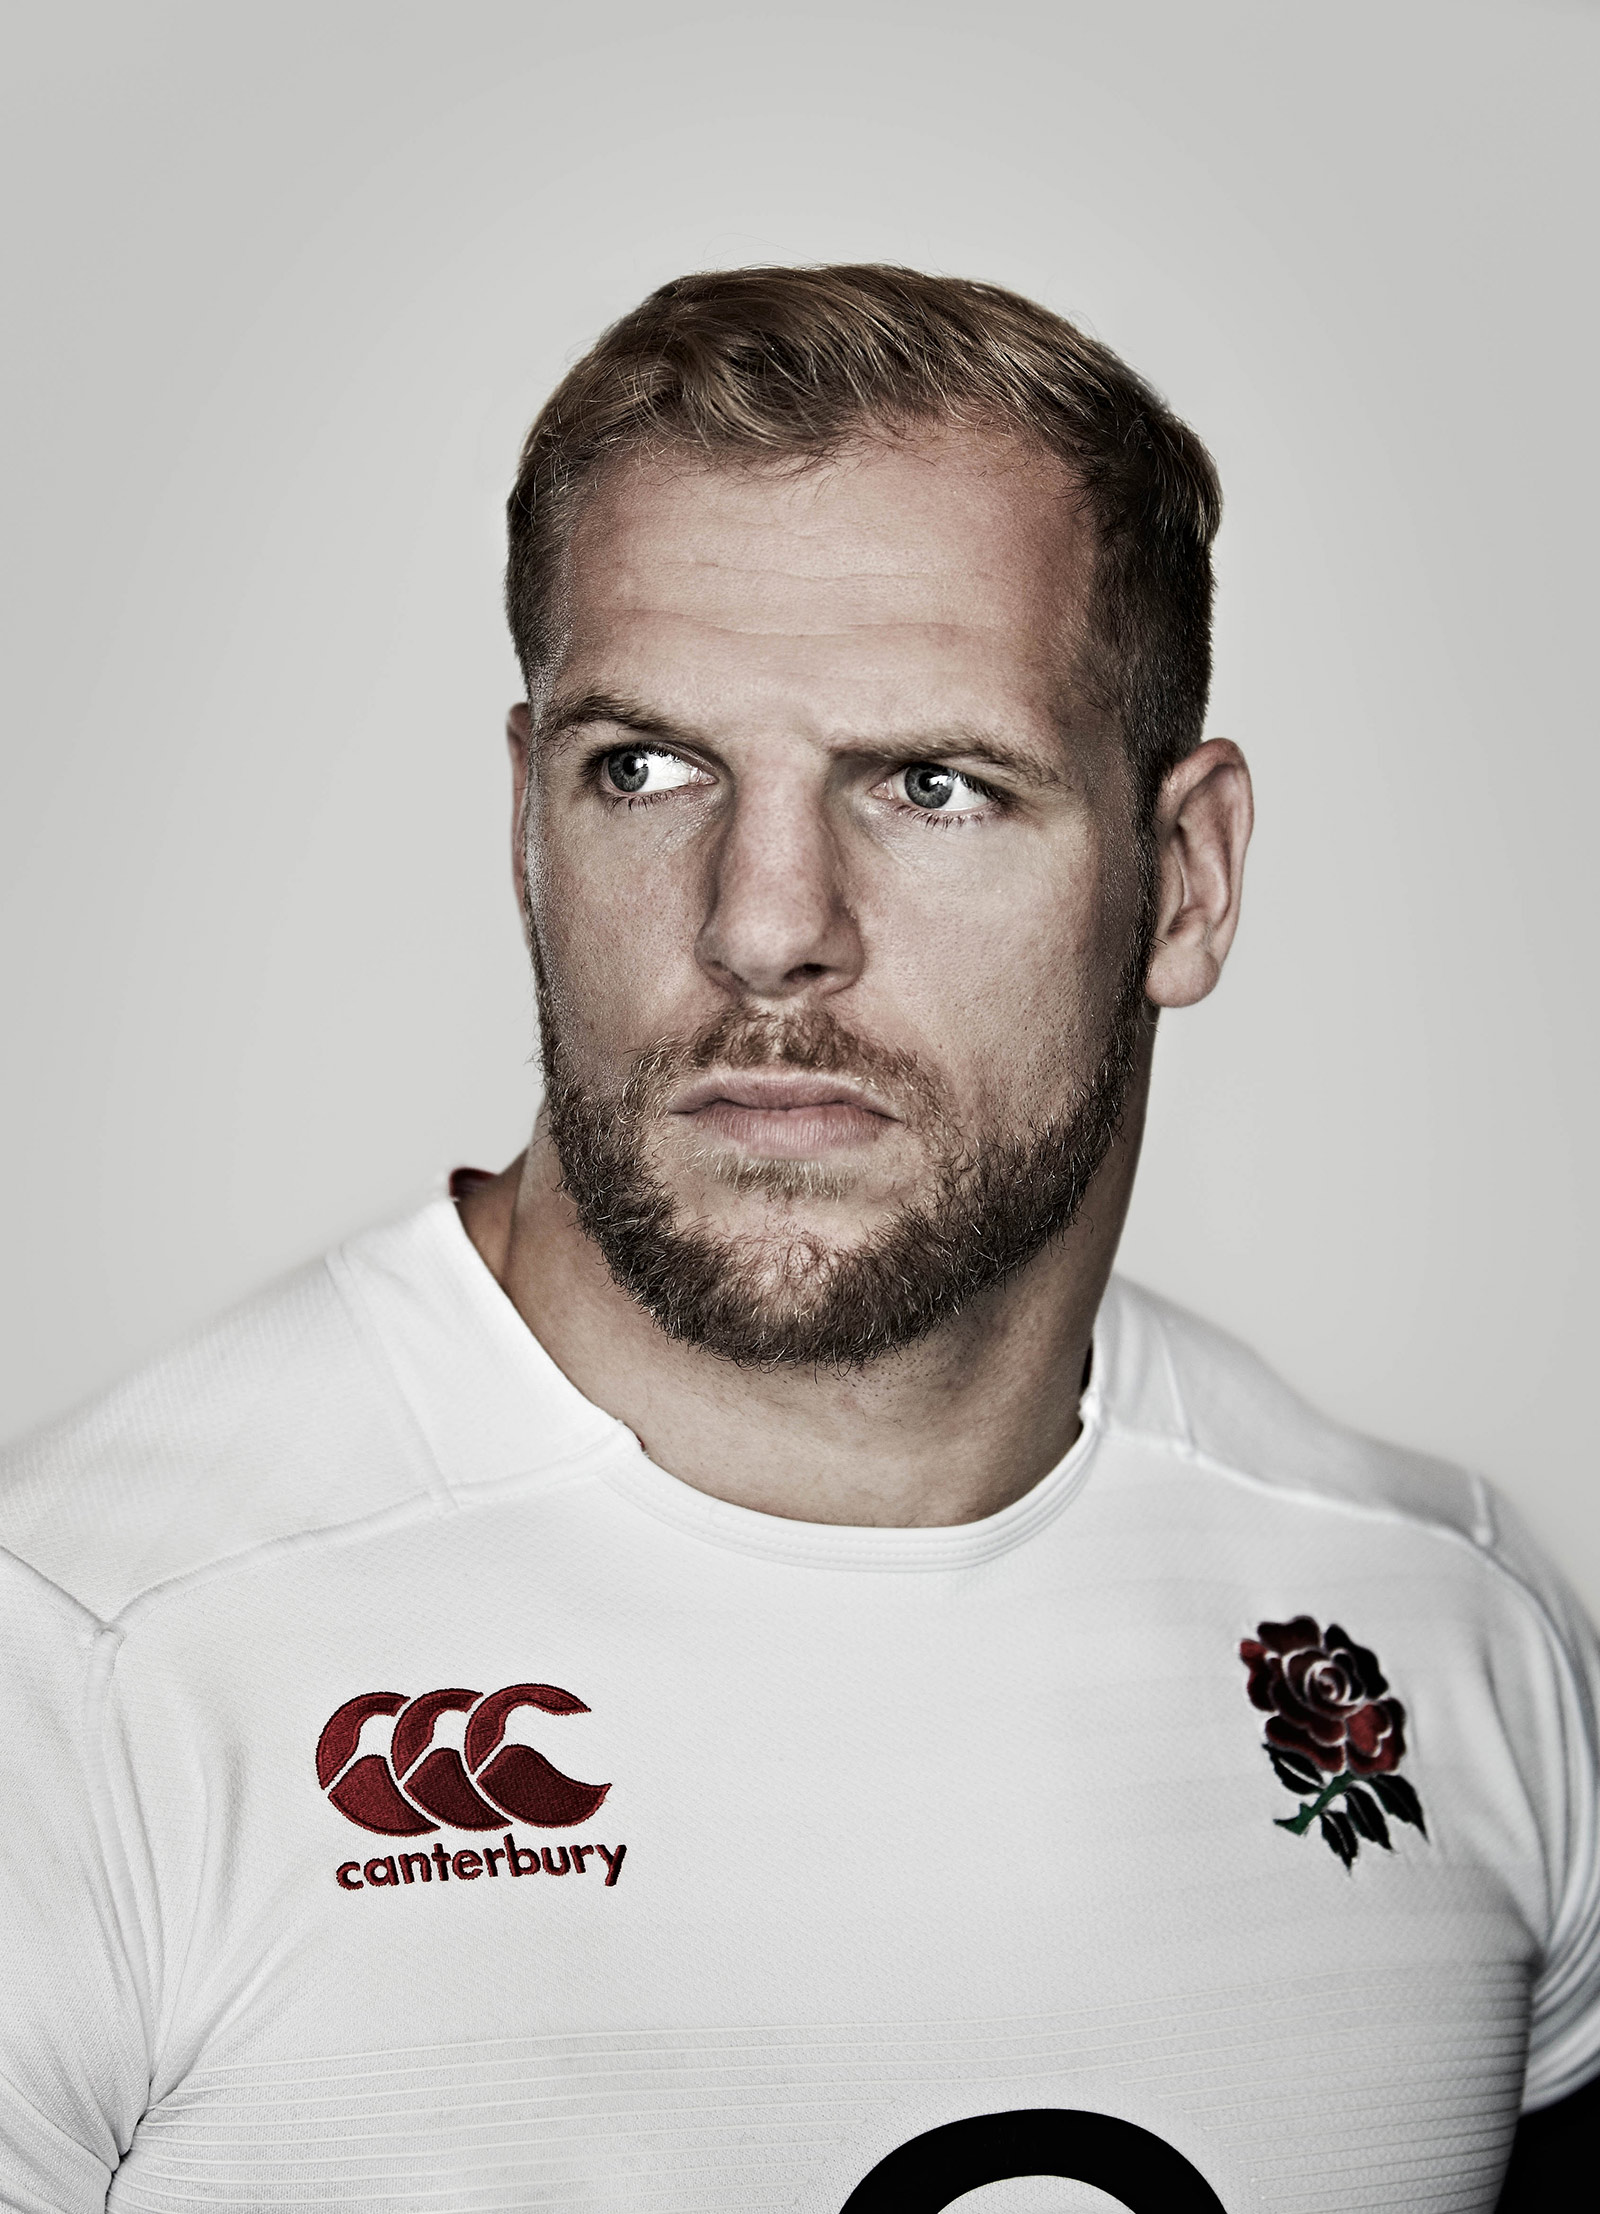 England Rugby International james Haskell